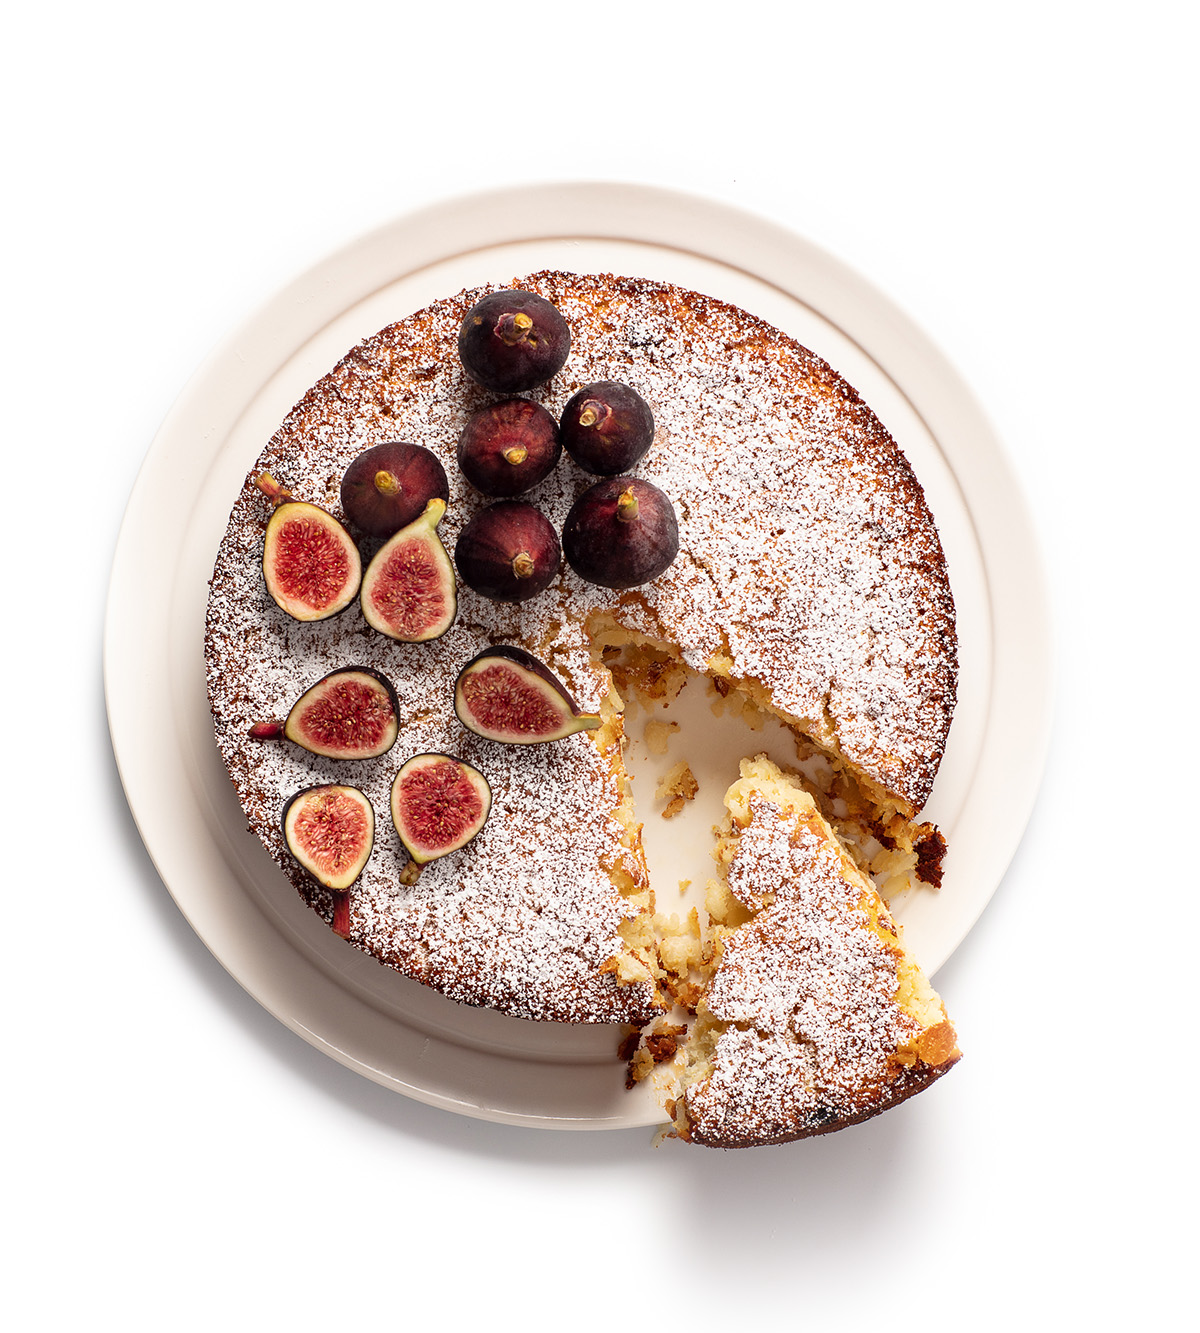 JAN | Jan Hendrik van der Westhuizen | RICE CAKE WITH MUSCADEL-SOAKED SULTANAS AND FIGS